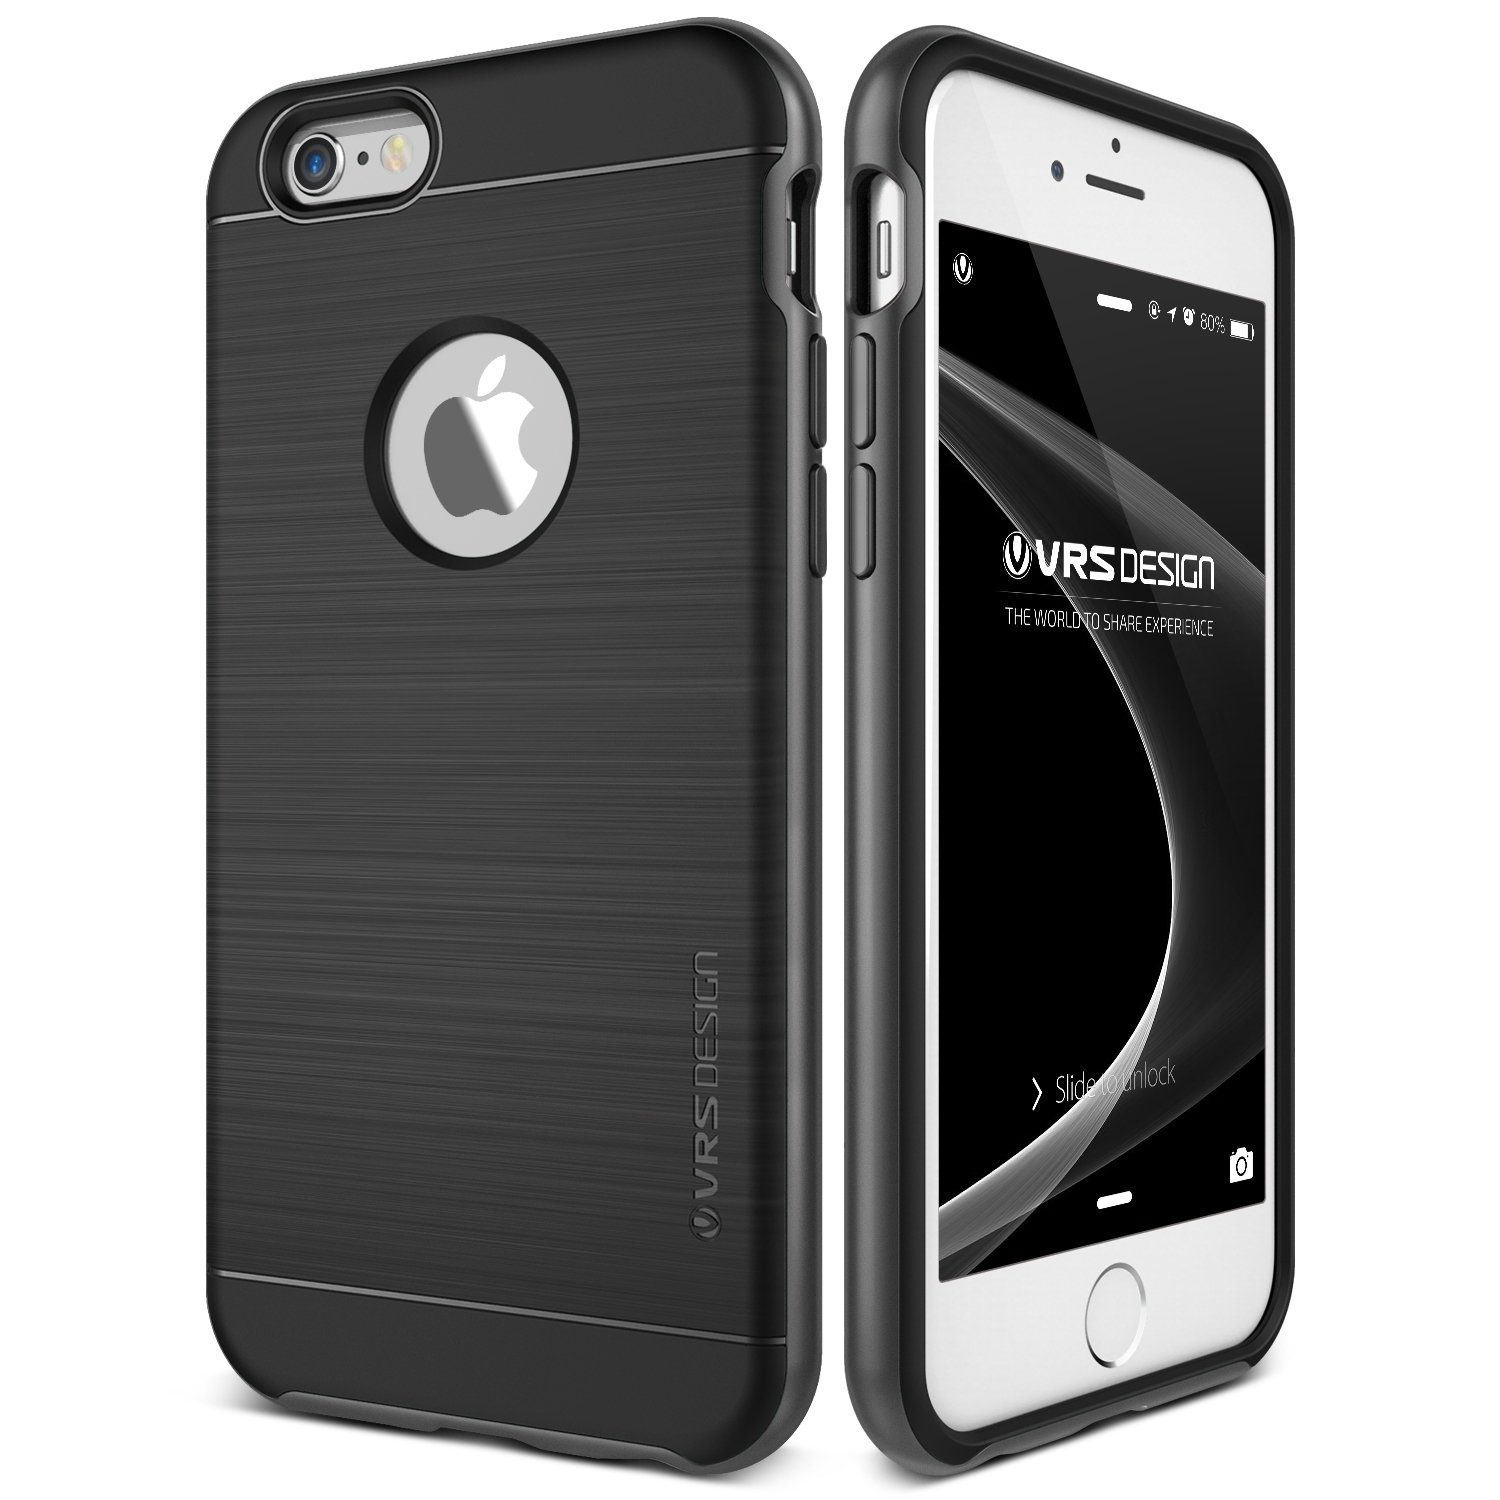 iPhone 6S Case Cover | Slim Rugged Protection | VRS Design High Pro Shield for Apple iPhone 6S